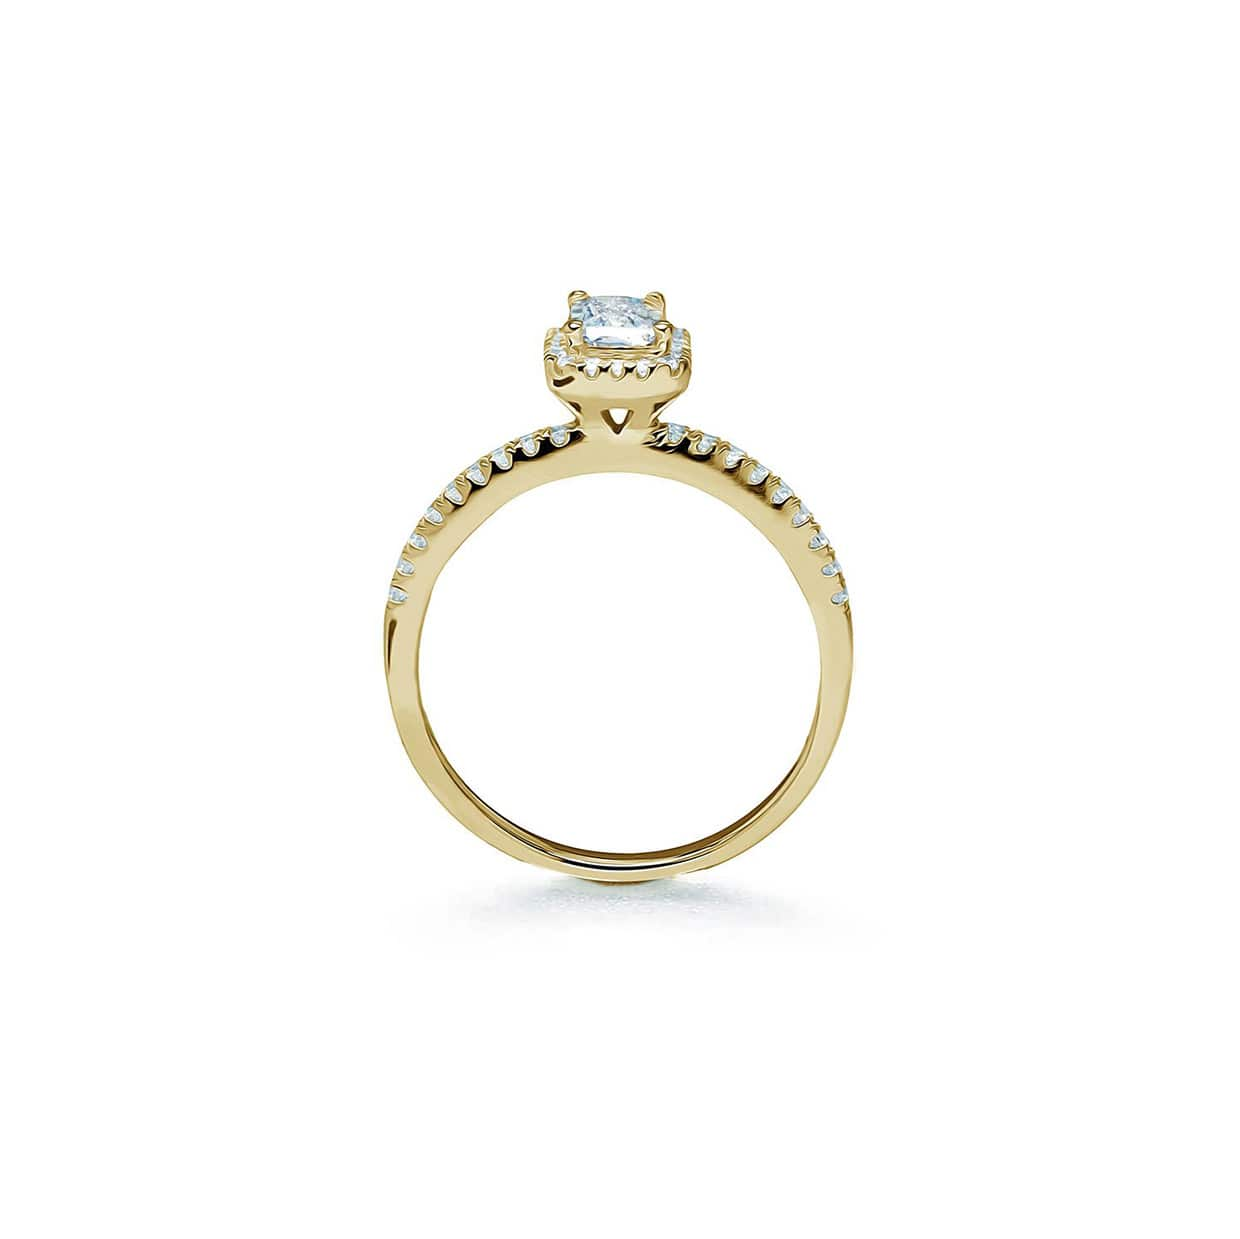 Oxford Gold Classic Halo Radiant Ring - Abelstedt